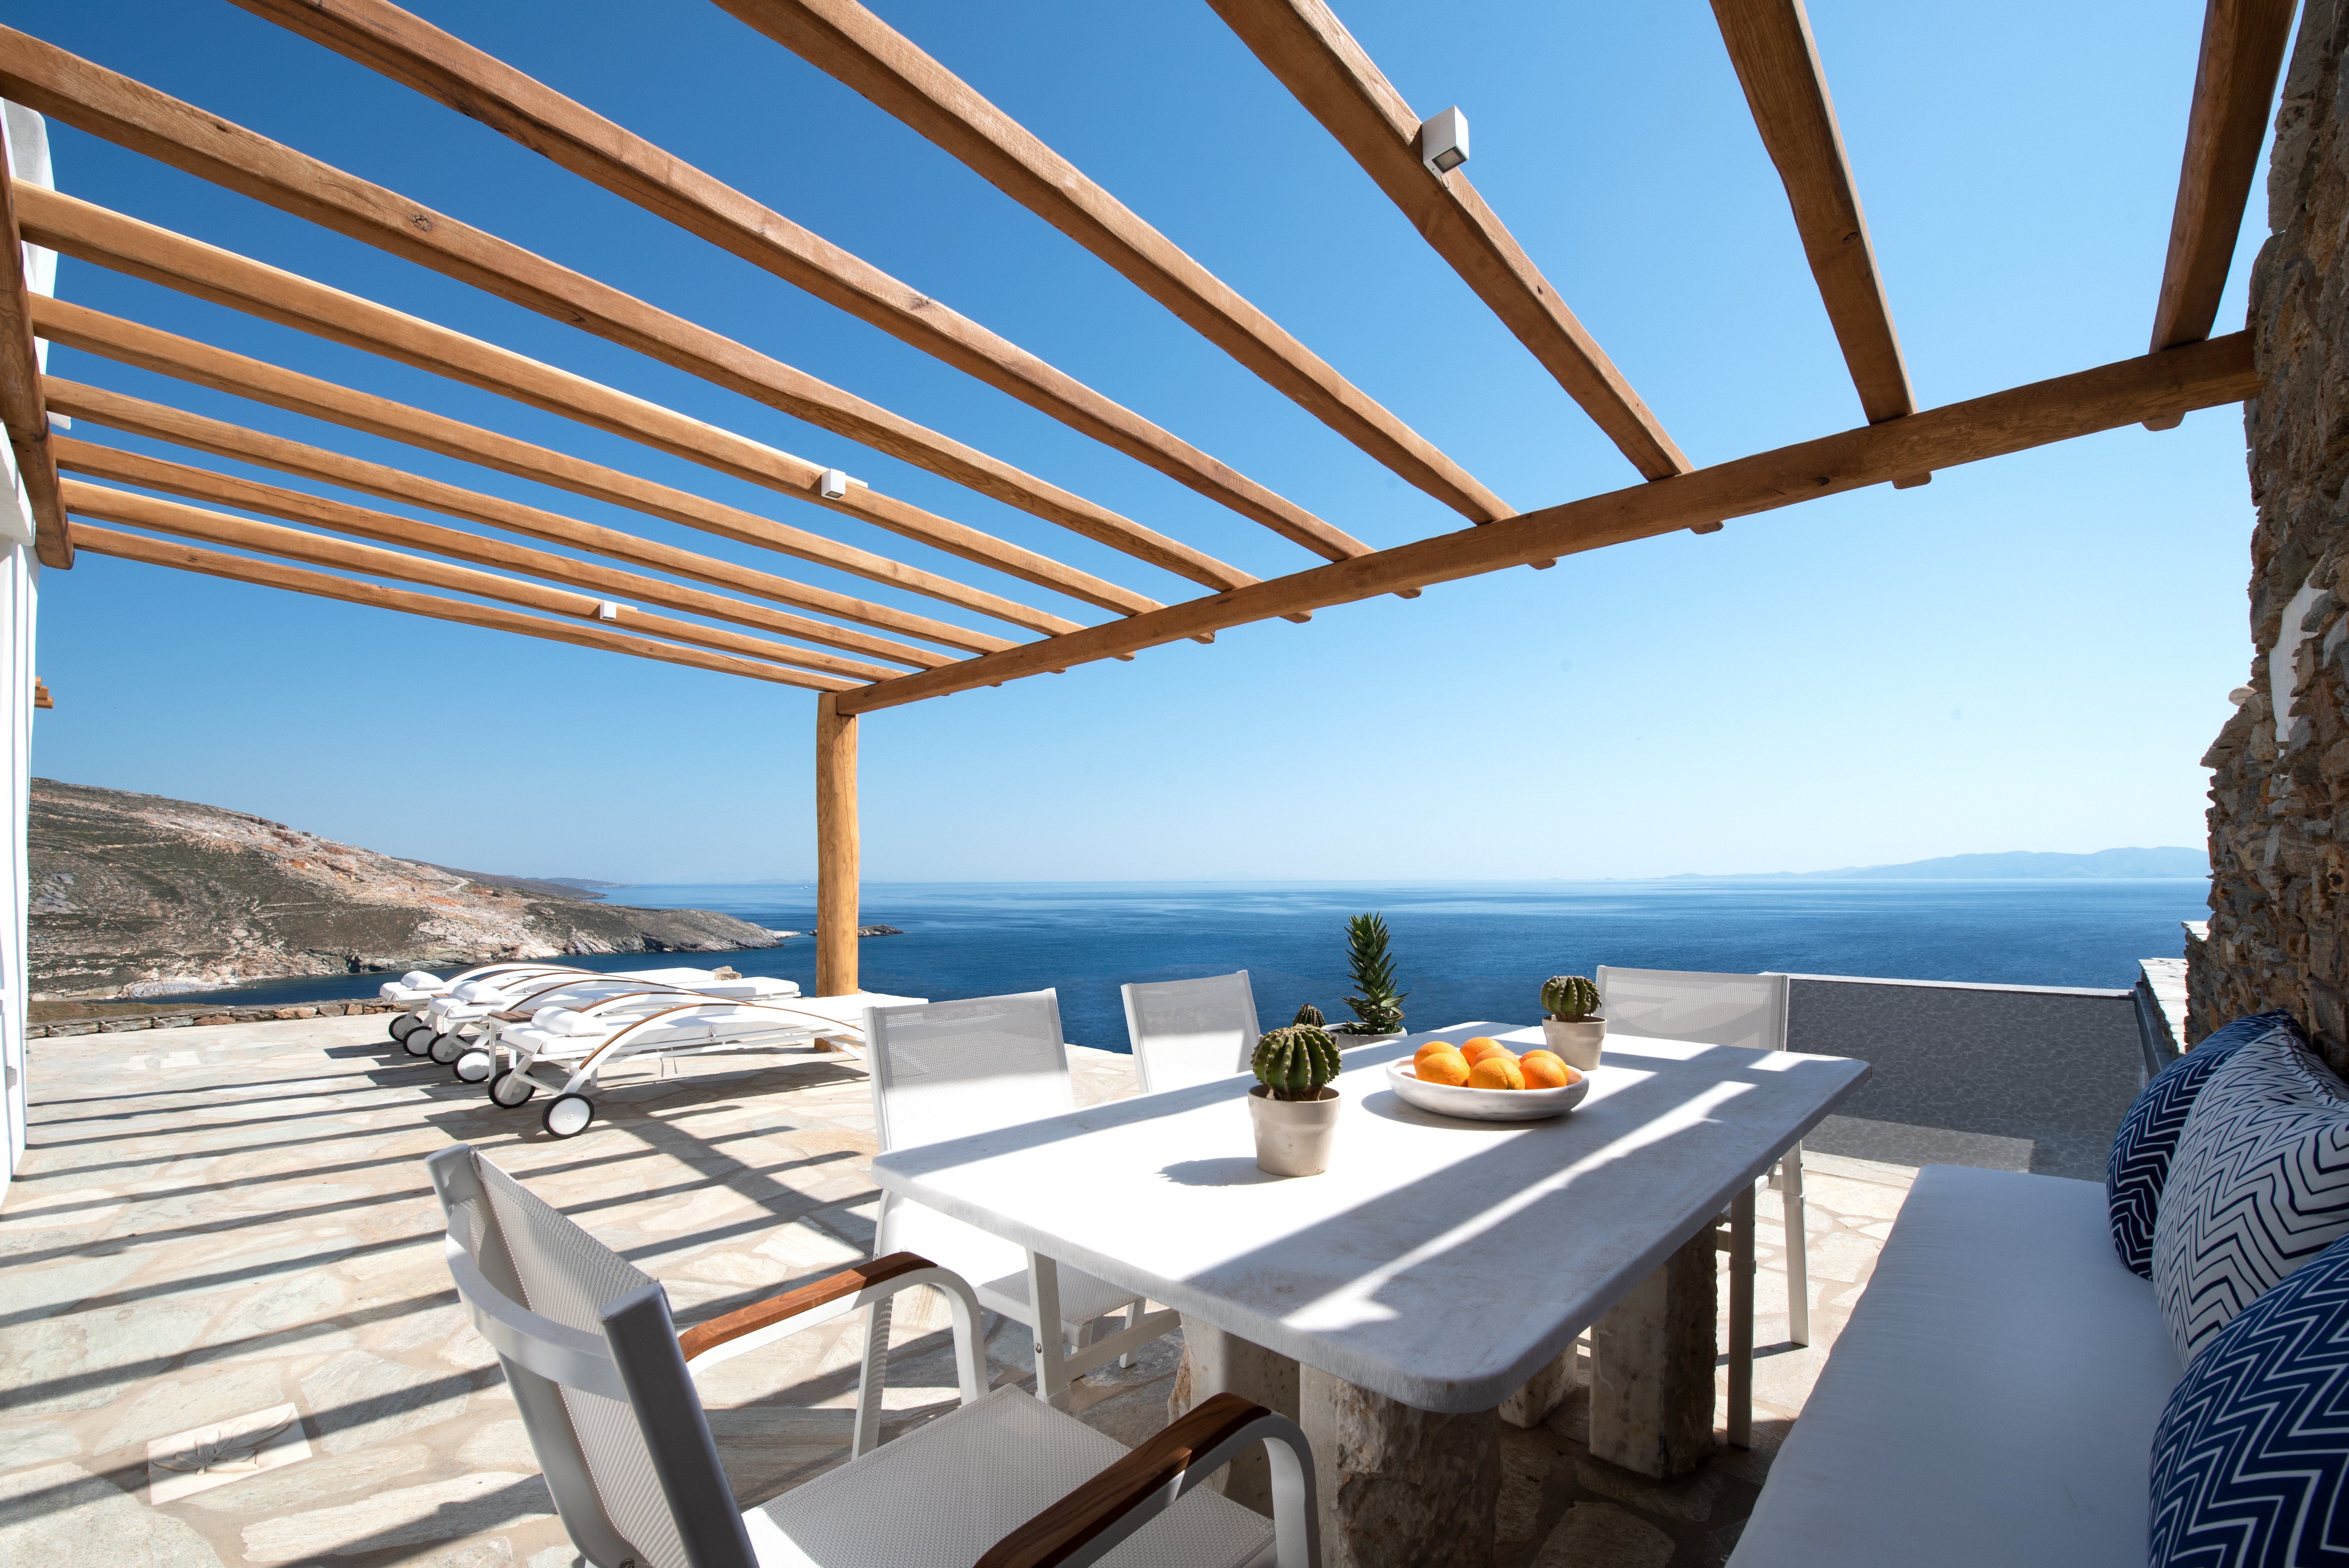 luxury villa rental, Greece, CYCTIN 10029B